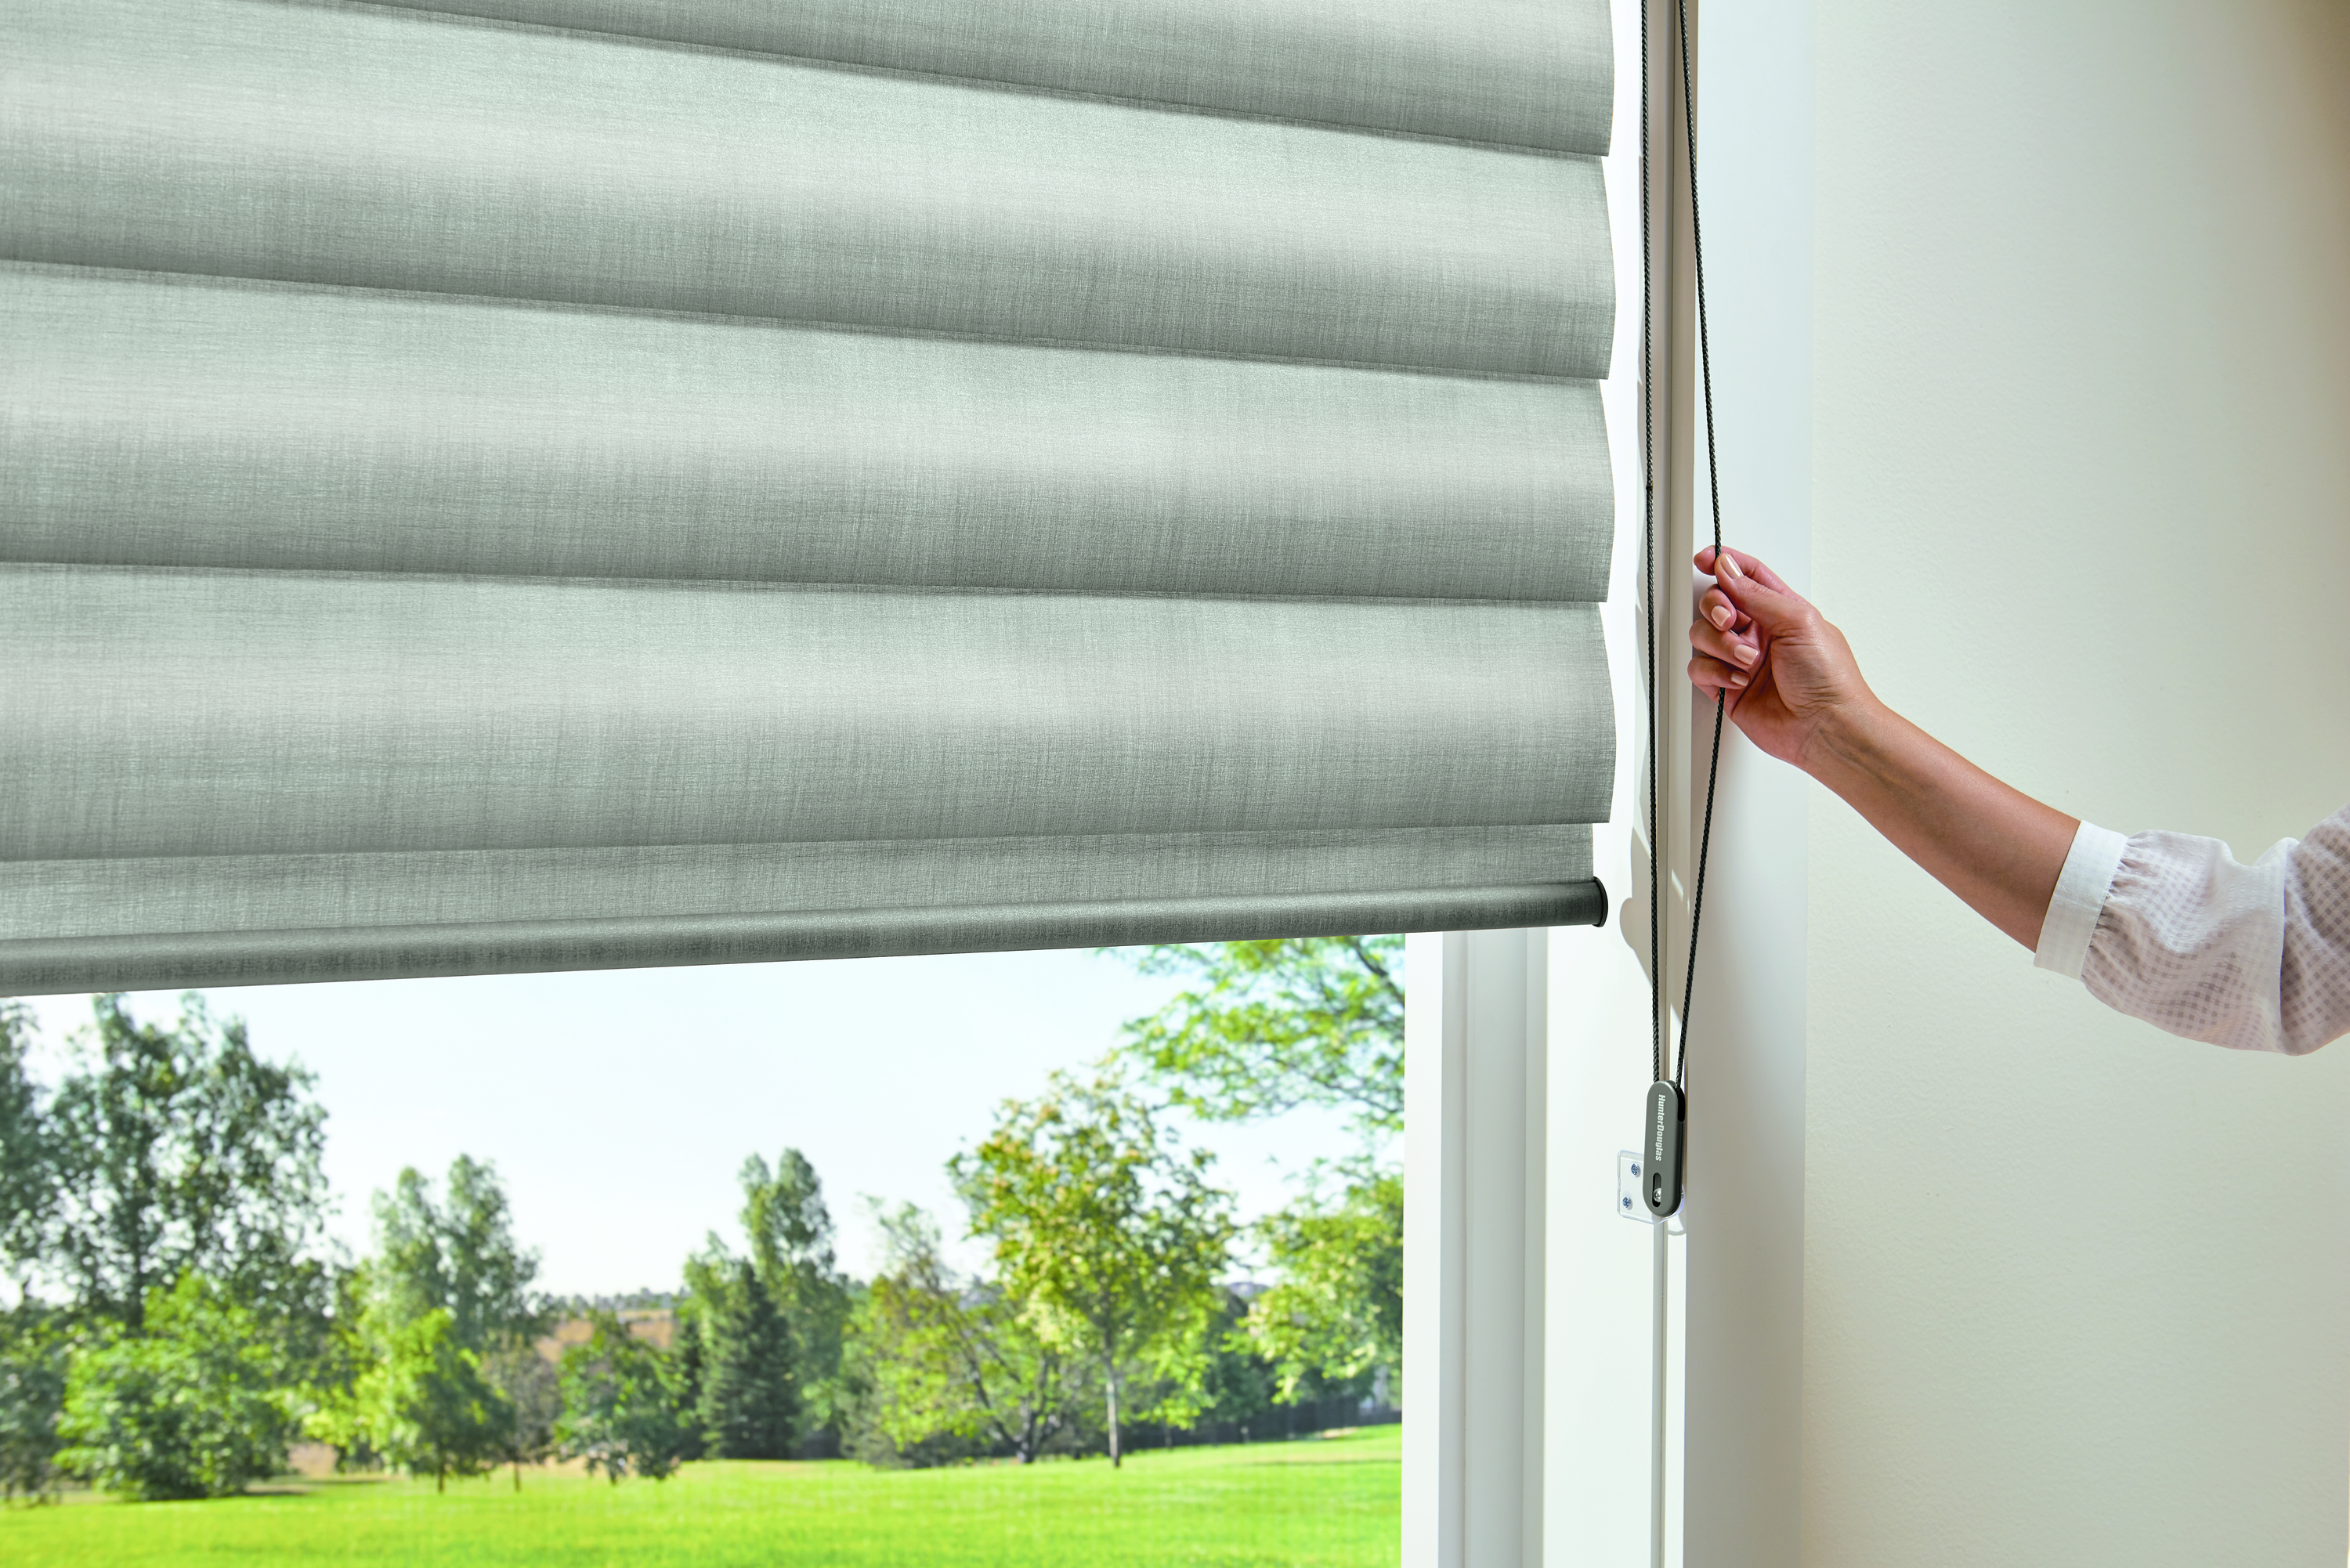 Hunter Douglas operating systems Pirouette with EasyRise